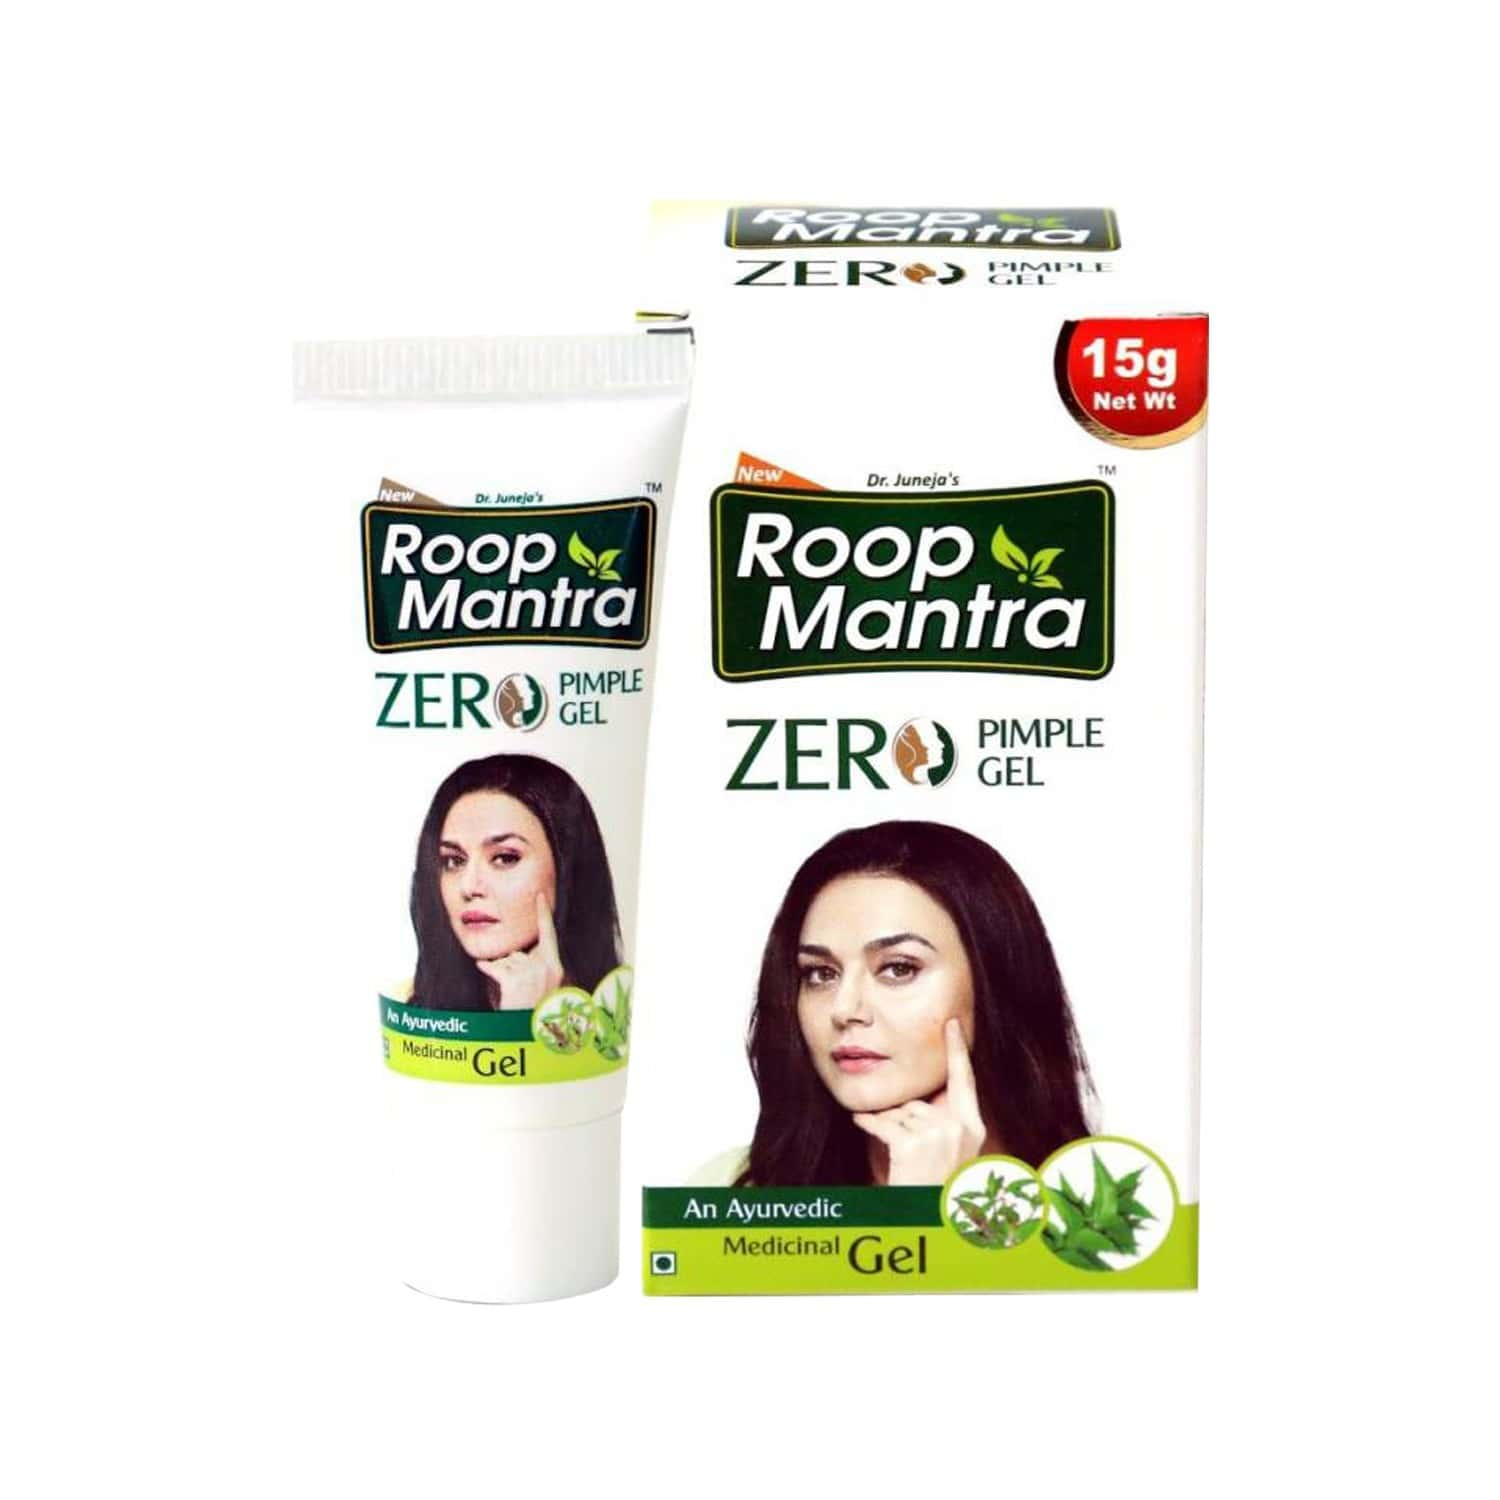 Roop Mantra Zero Pimple Gel Tube Of 15 G